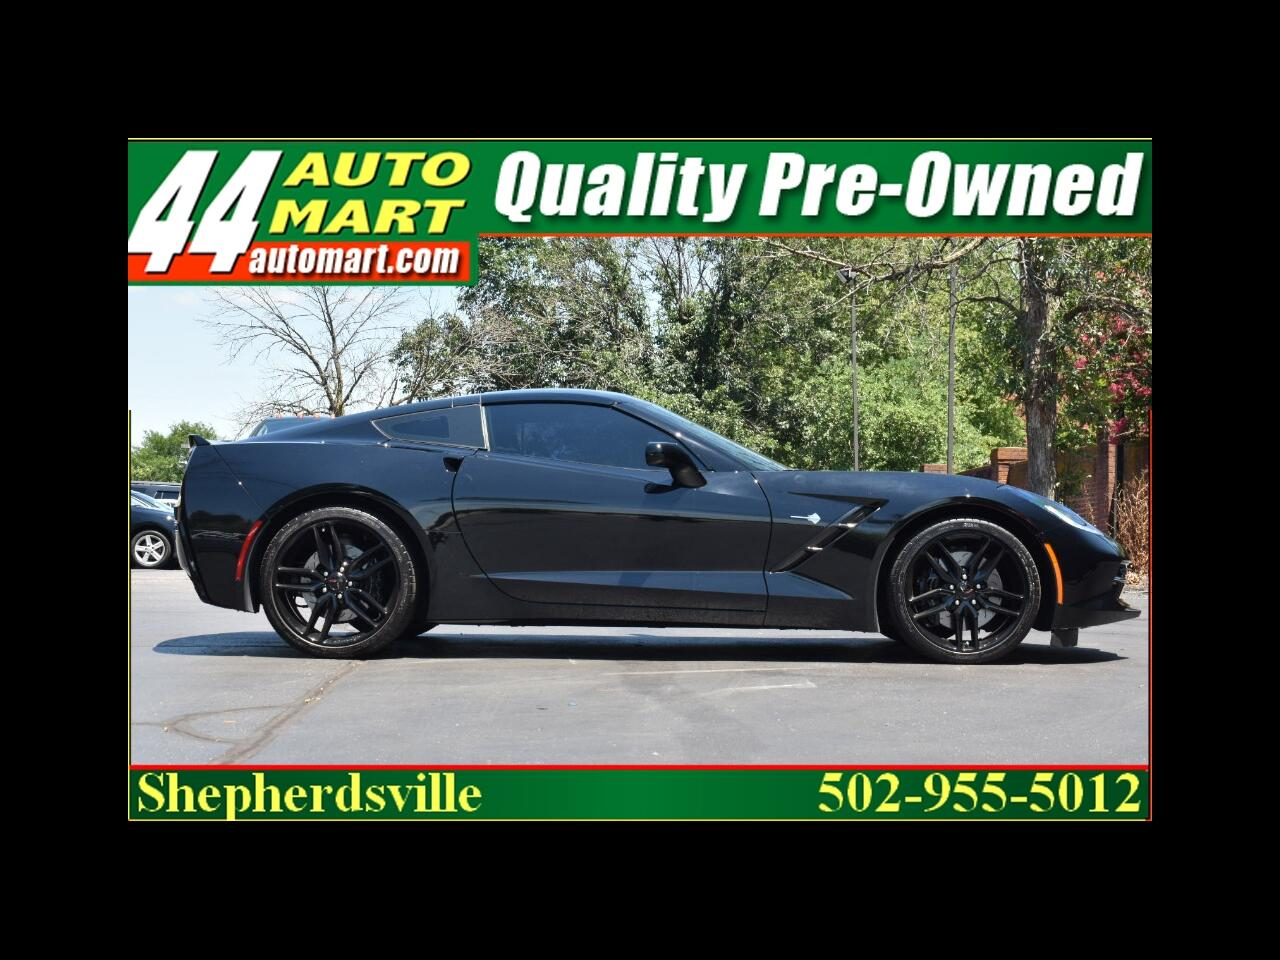 2016 Chevrolet Corvette Stingray Z51 3LT Coupe Automatic